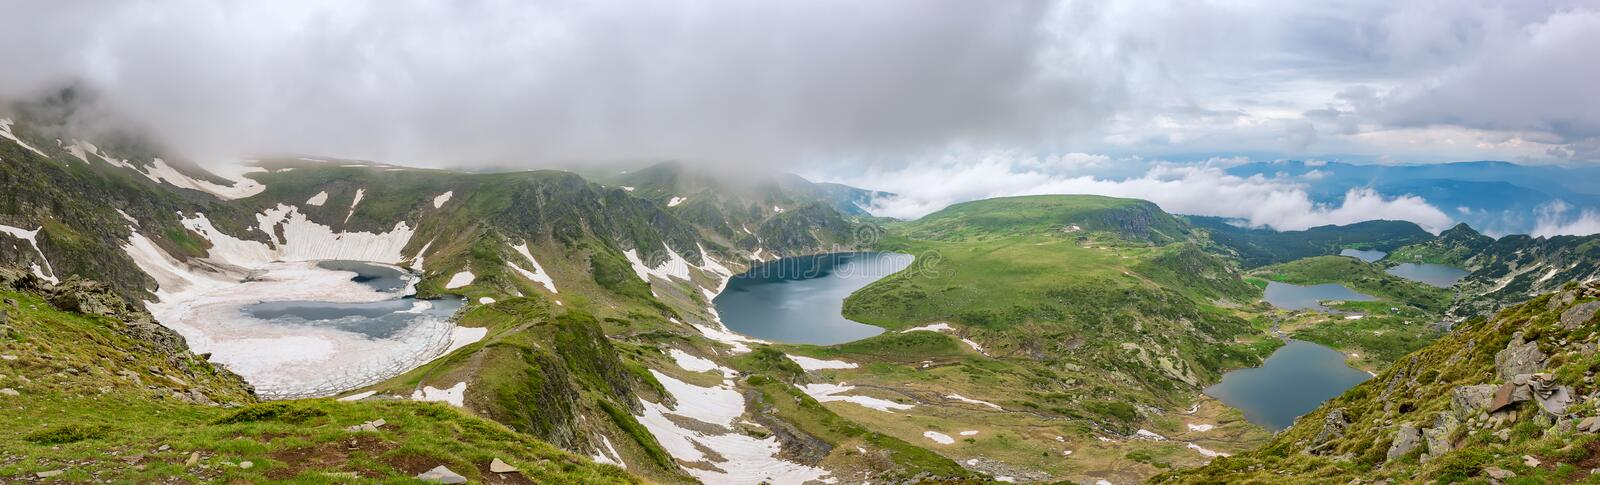 Rila lakes. Magnificent panoramic view of six of the famous Seven Rila Lakes in spring time stock images